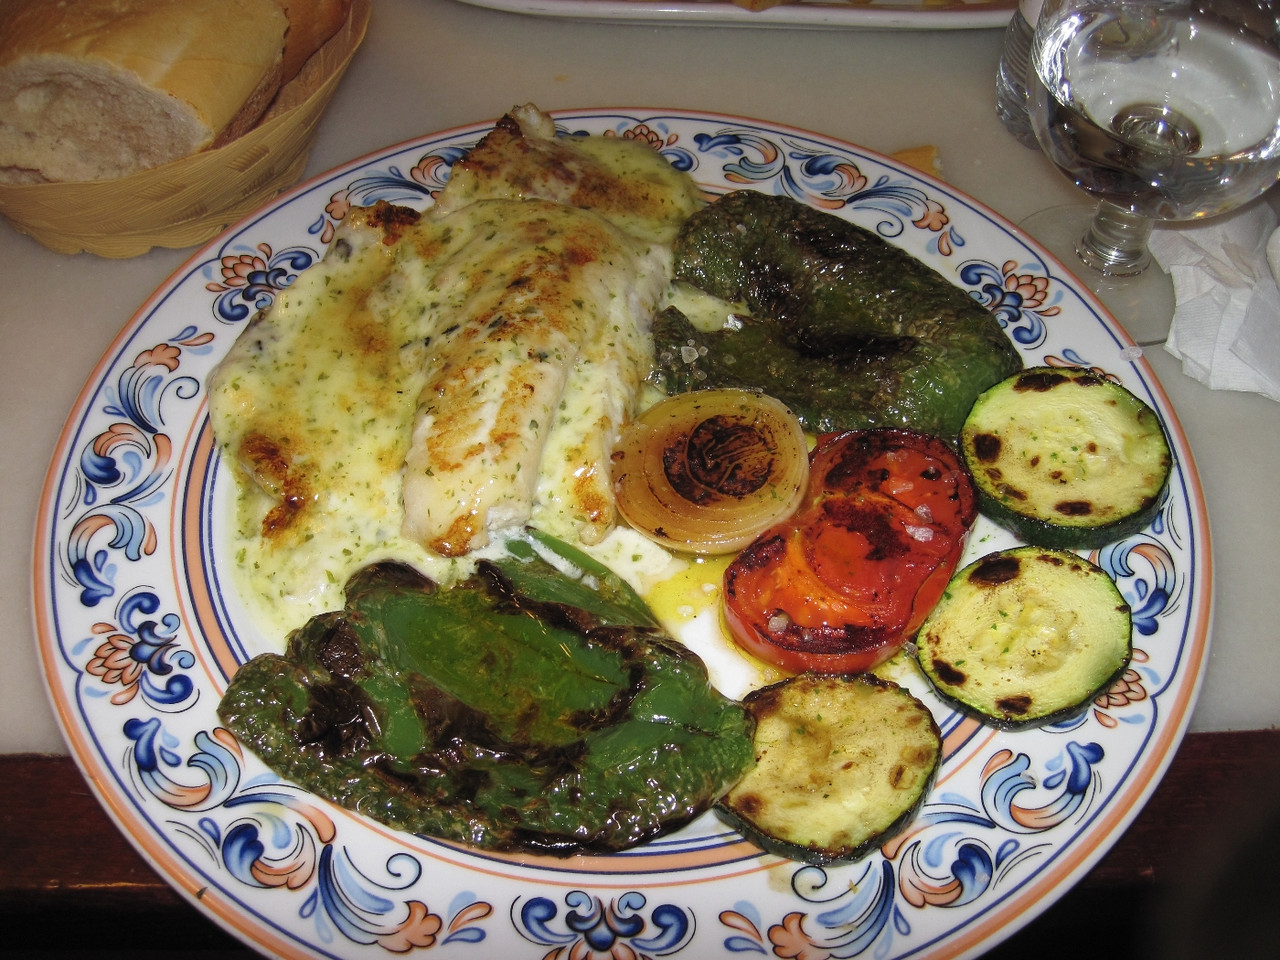 Grilled vegetables and fish for dinner.